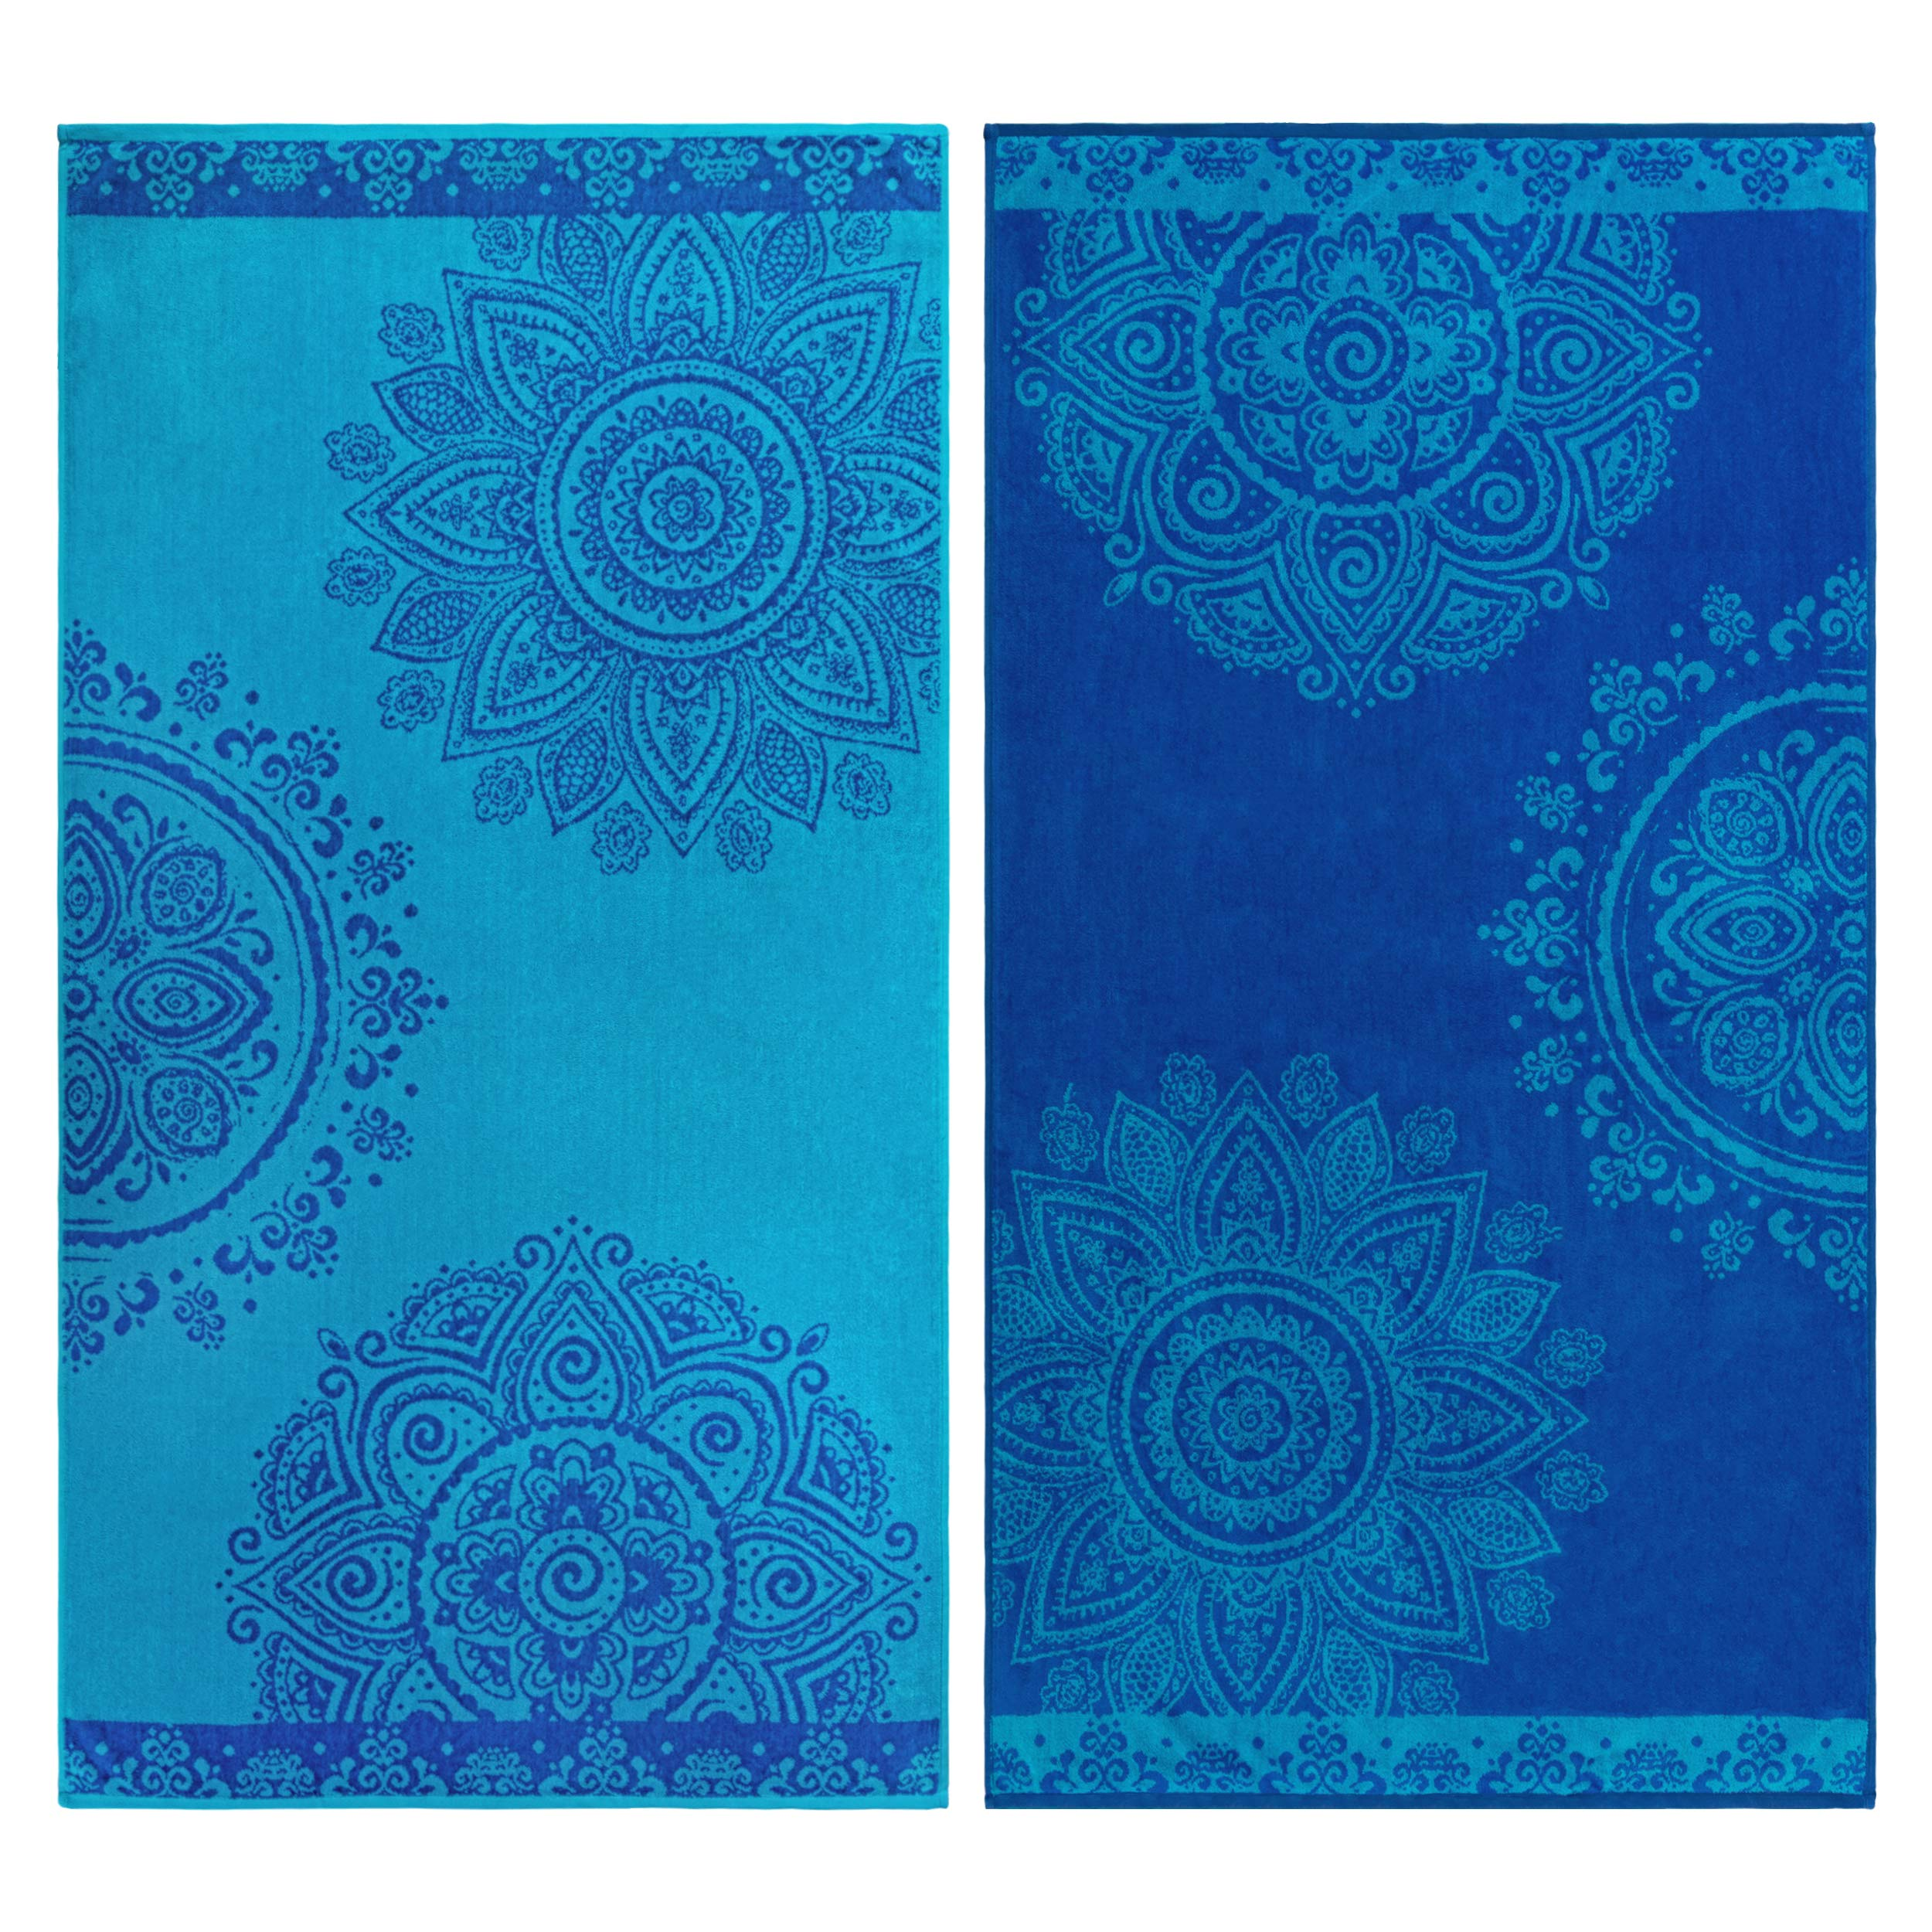 """Superior 100% Egyptian Cotton, 450 GSM, Floral Mandala Oversized Beach Towel (Set of 2) 34""""x 64"""", 2-Ply, High Absorbency Blue and teal Floral Pattern"""